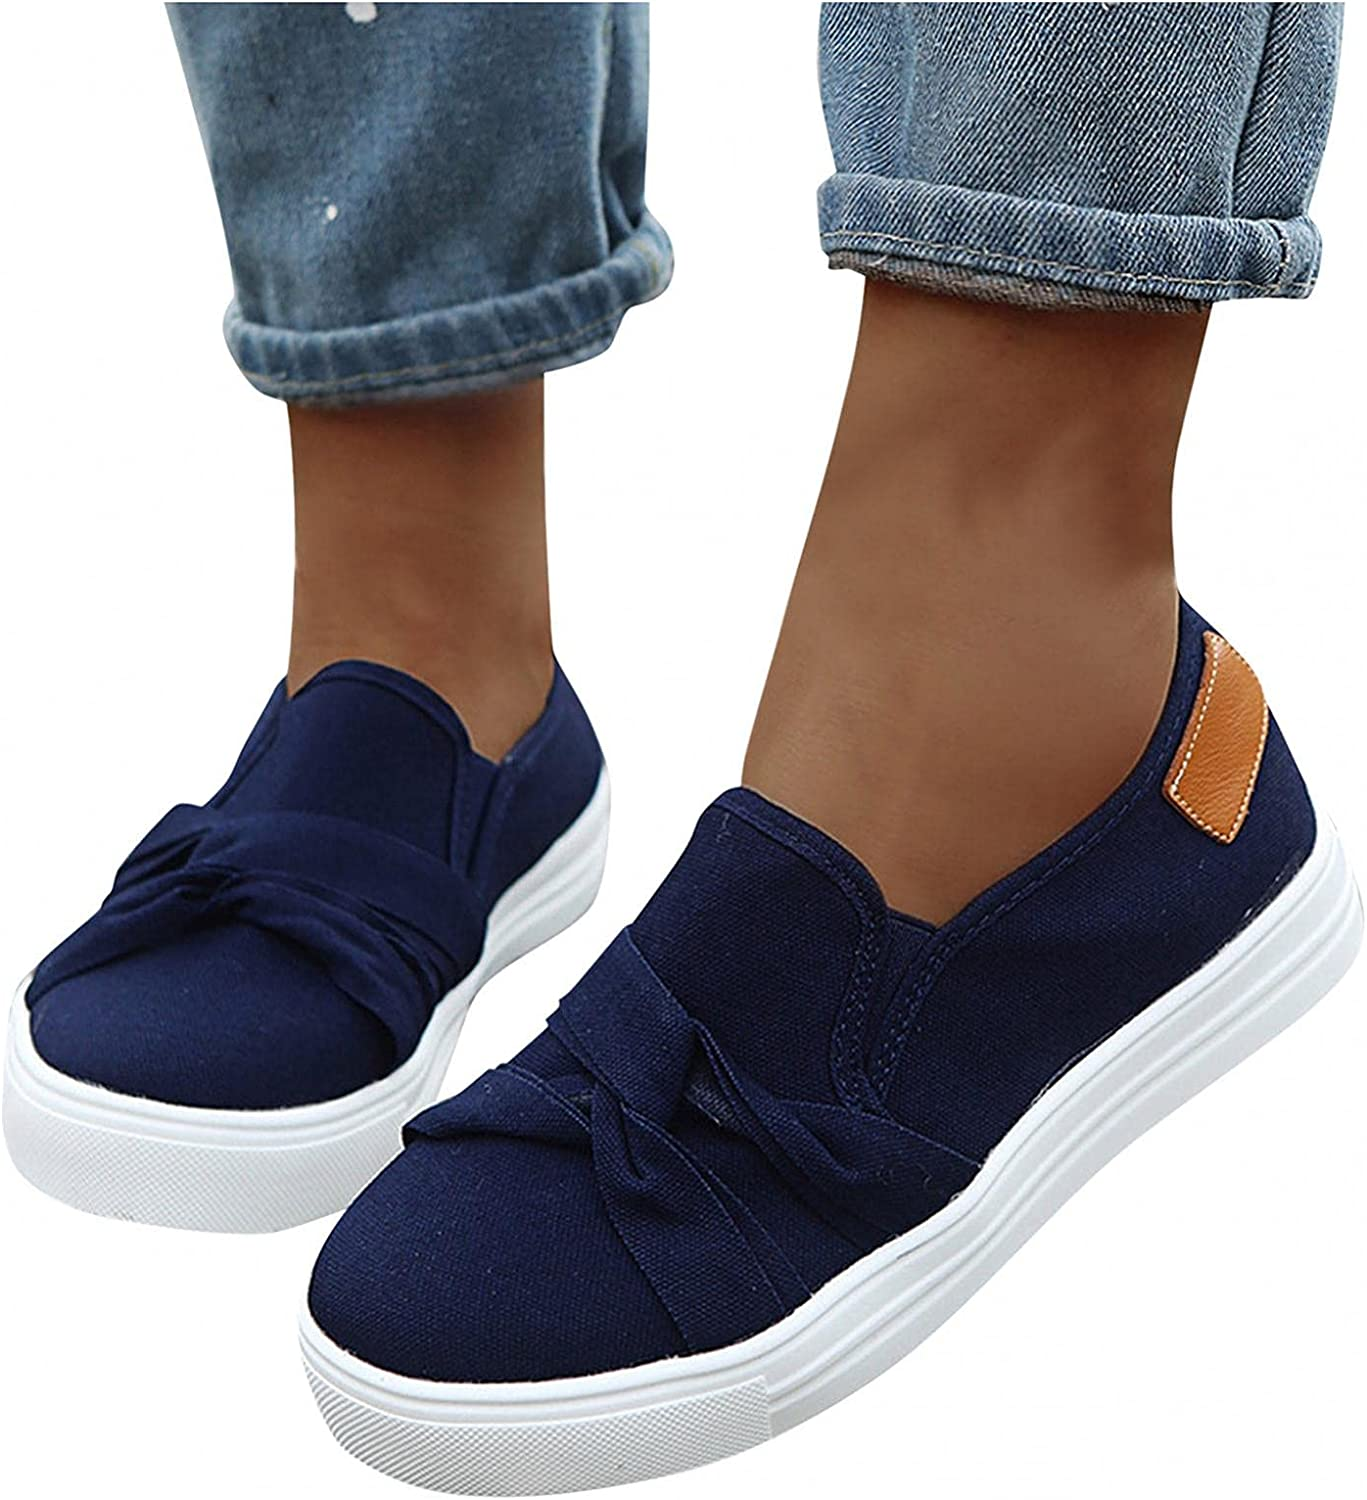 Masbird Sneakers for Women Walking Shoes Breathable Round Toe Canvas Loafers Fashion Platform Slip On Running Shoes